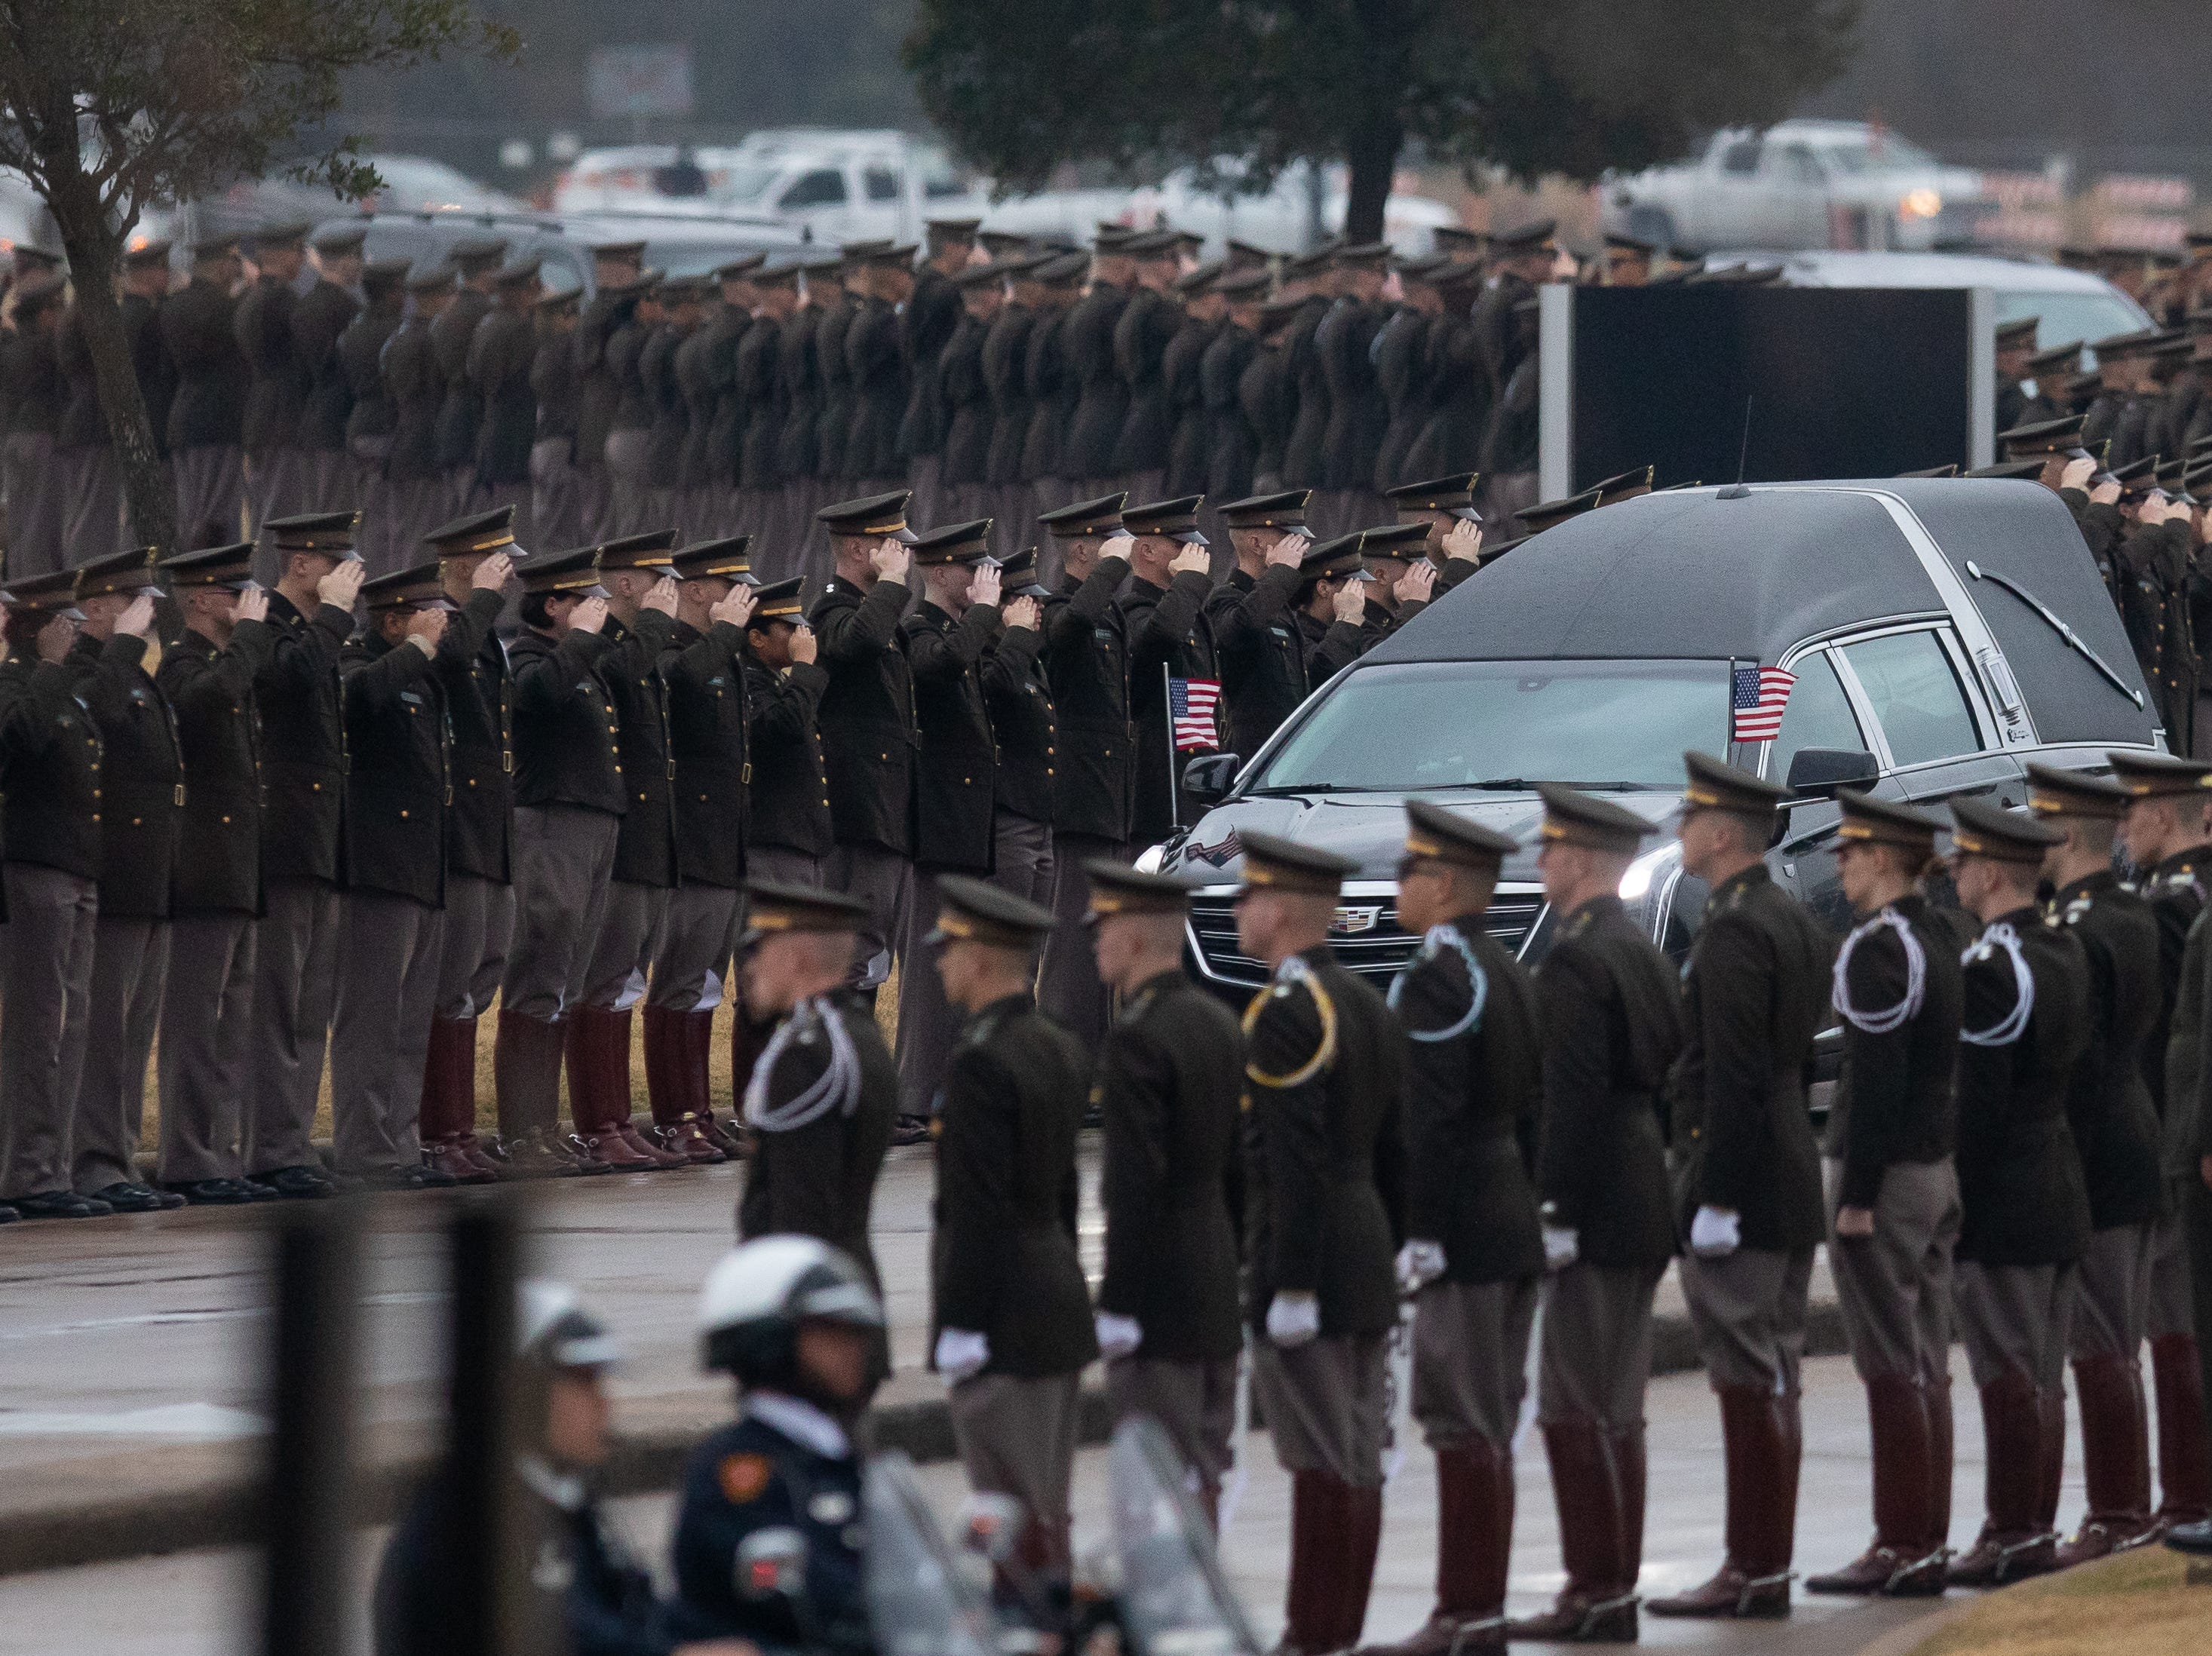 Members of the Texas A&M Corps of Cadets salute the hearse carrying George H.W. Bush as it arrives at the George Bush Presidential Library & Museum in College Station on Thursday, Dec 6, 2018.